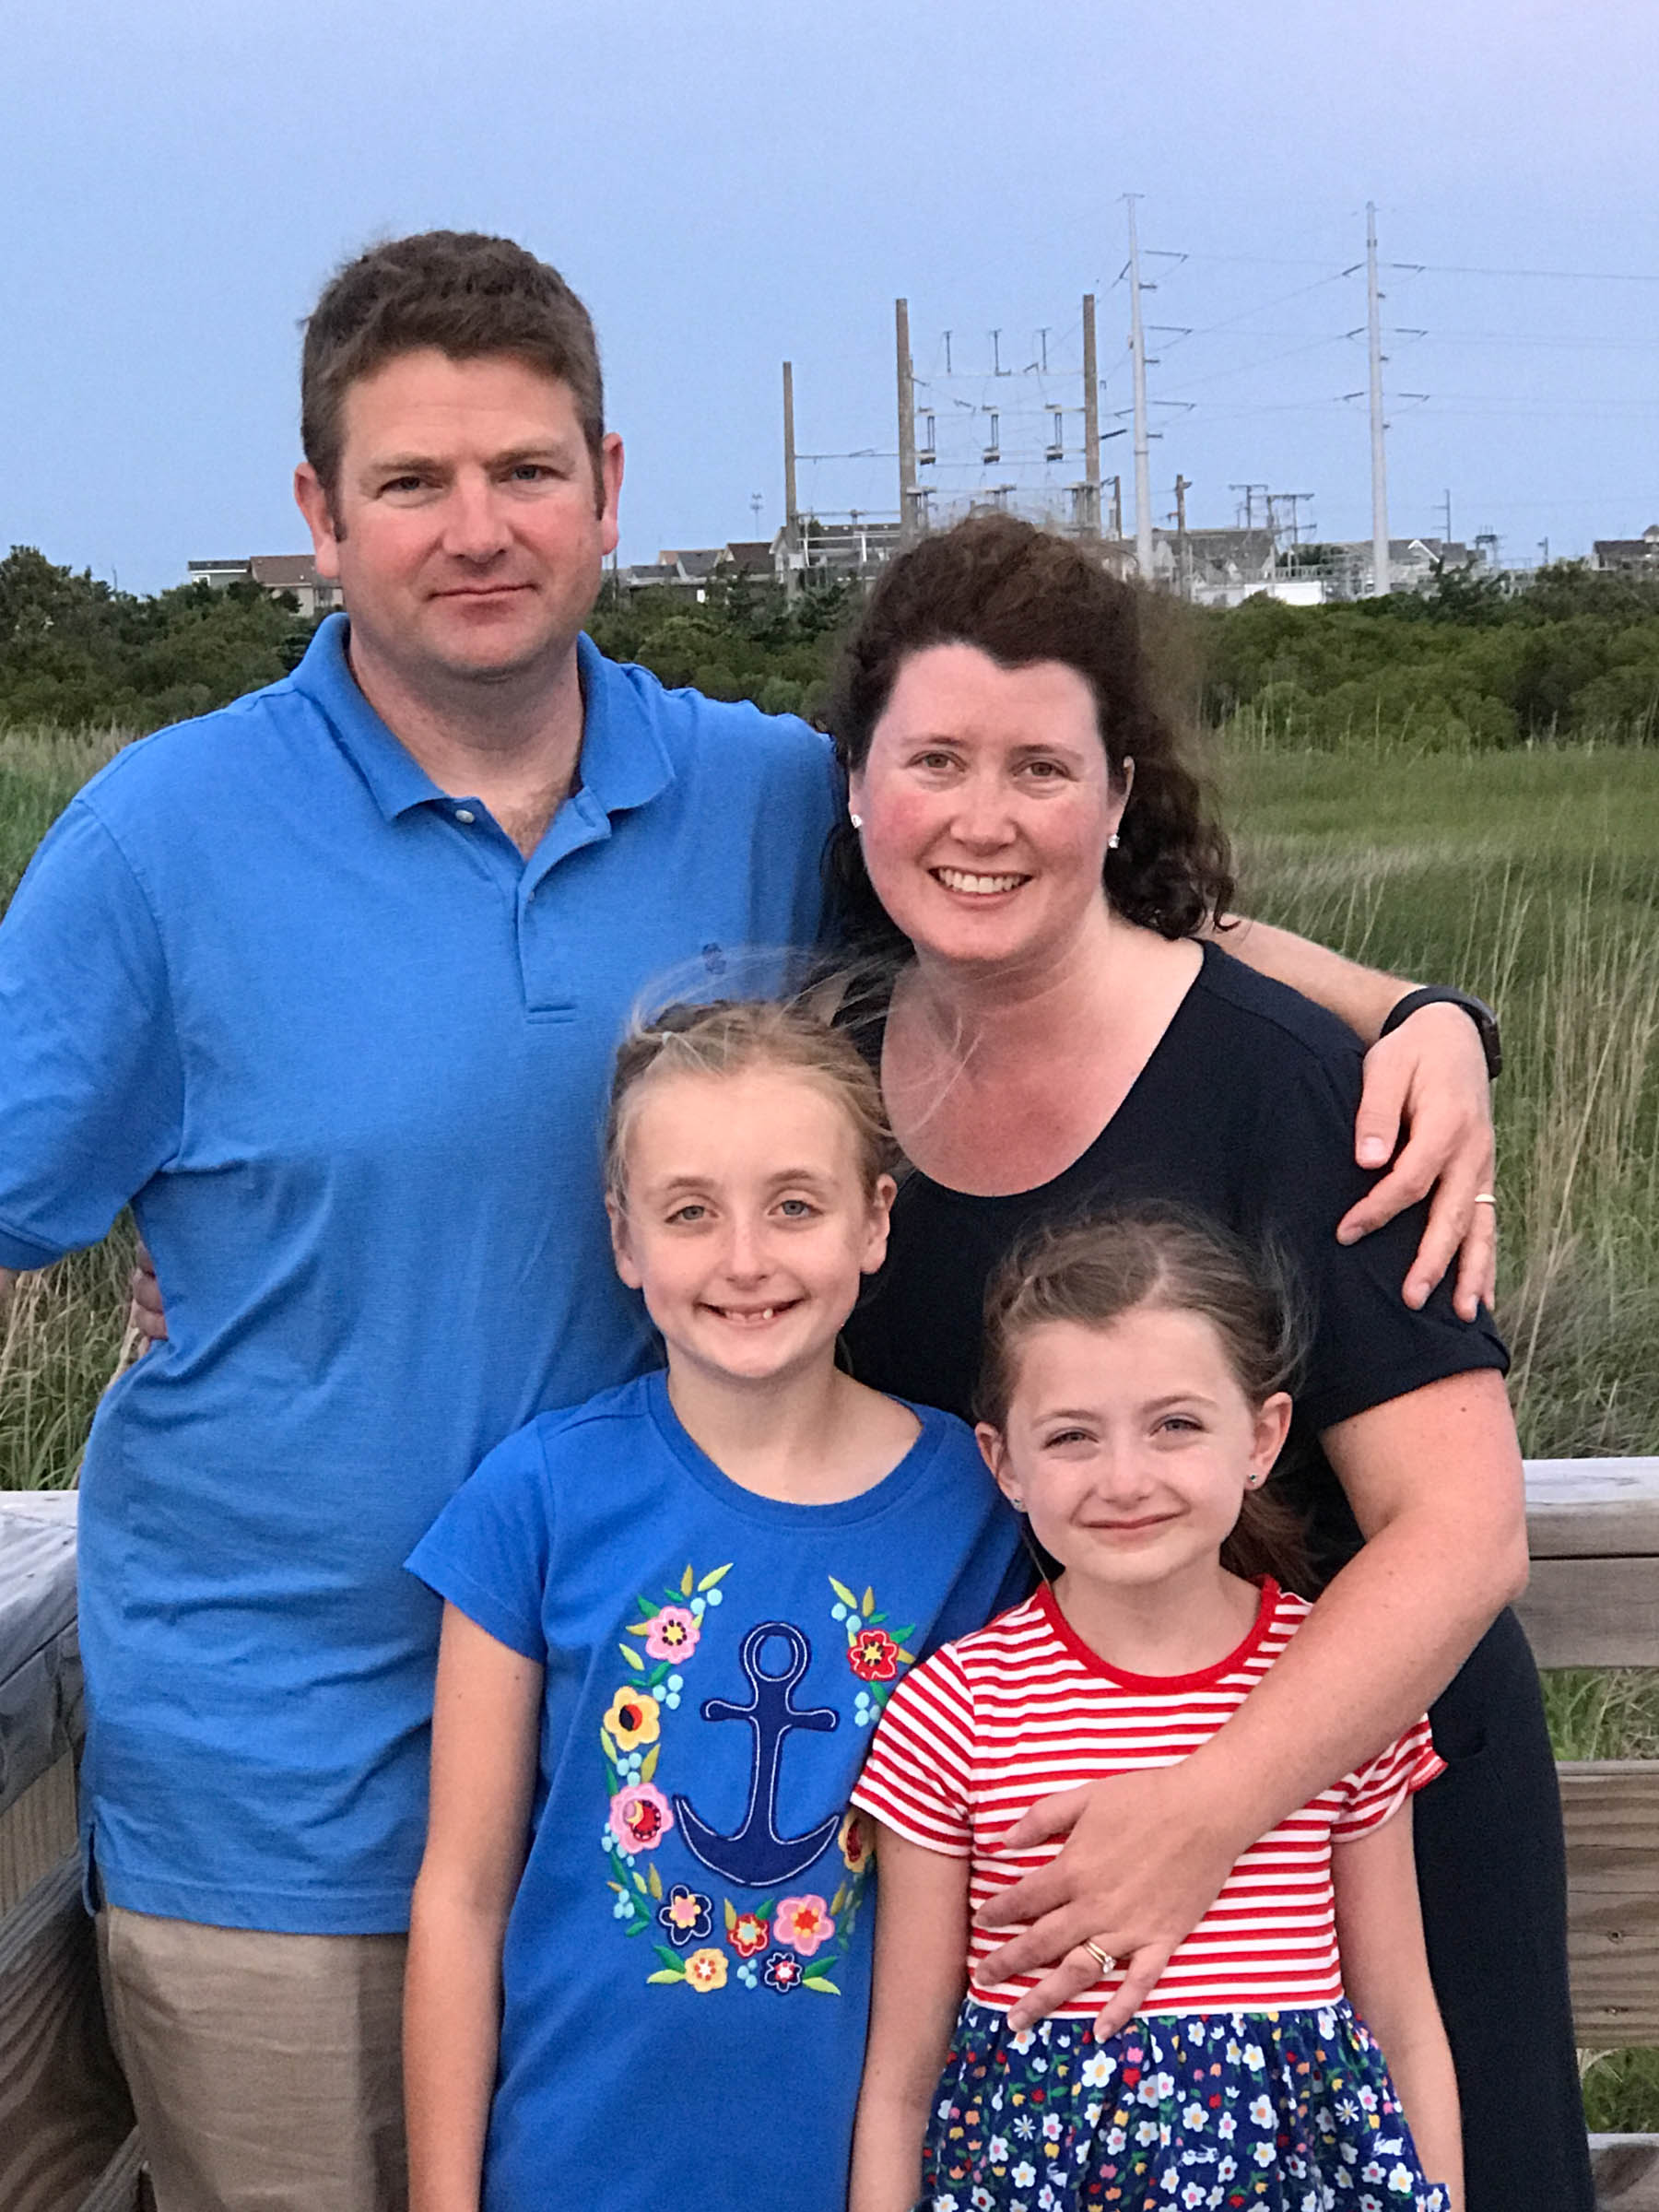 Tiffany Dahle and her family visiting the Outer Banks, NC.